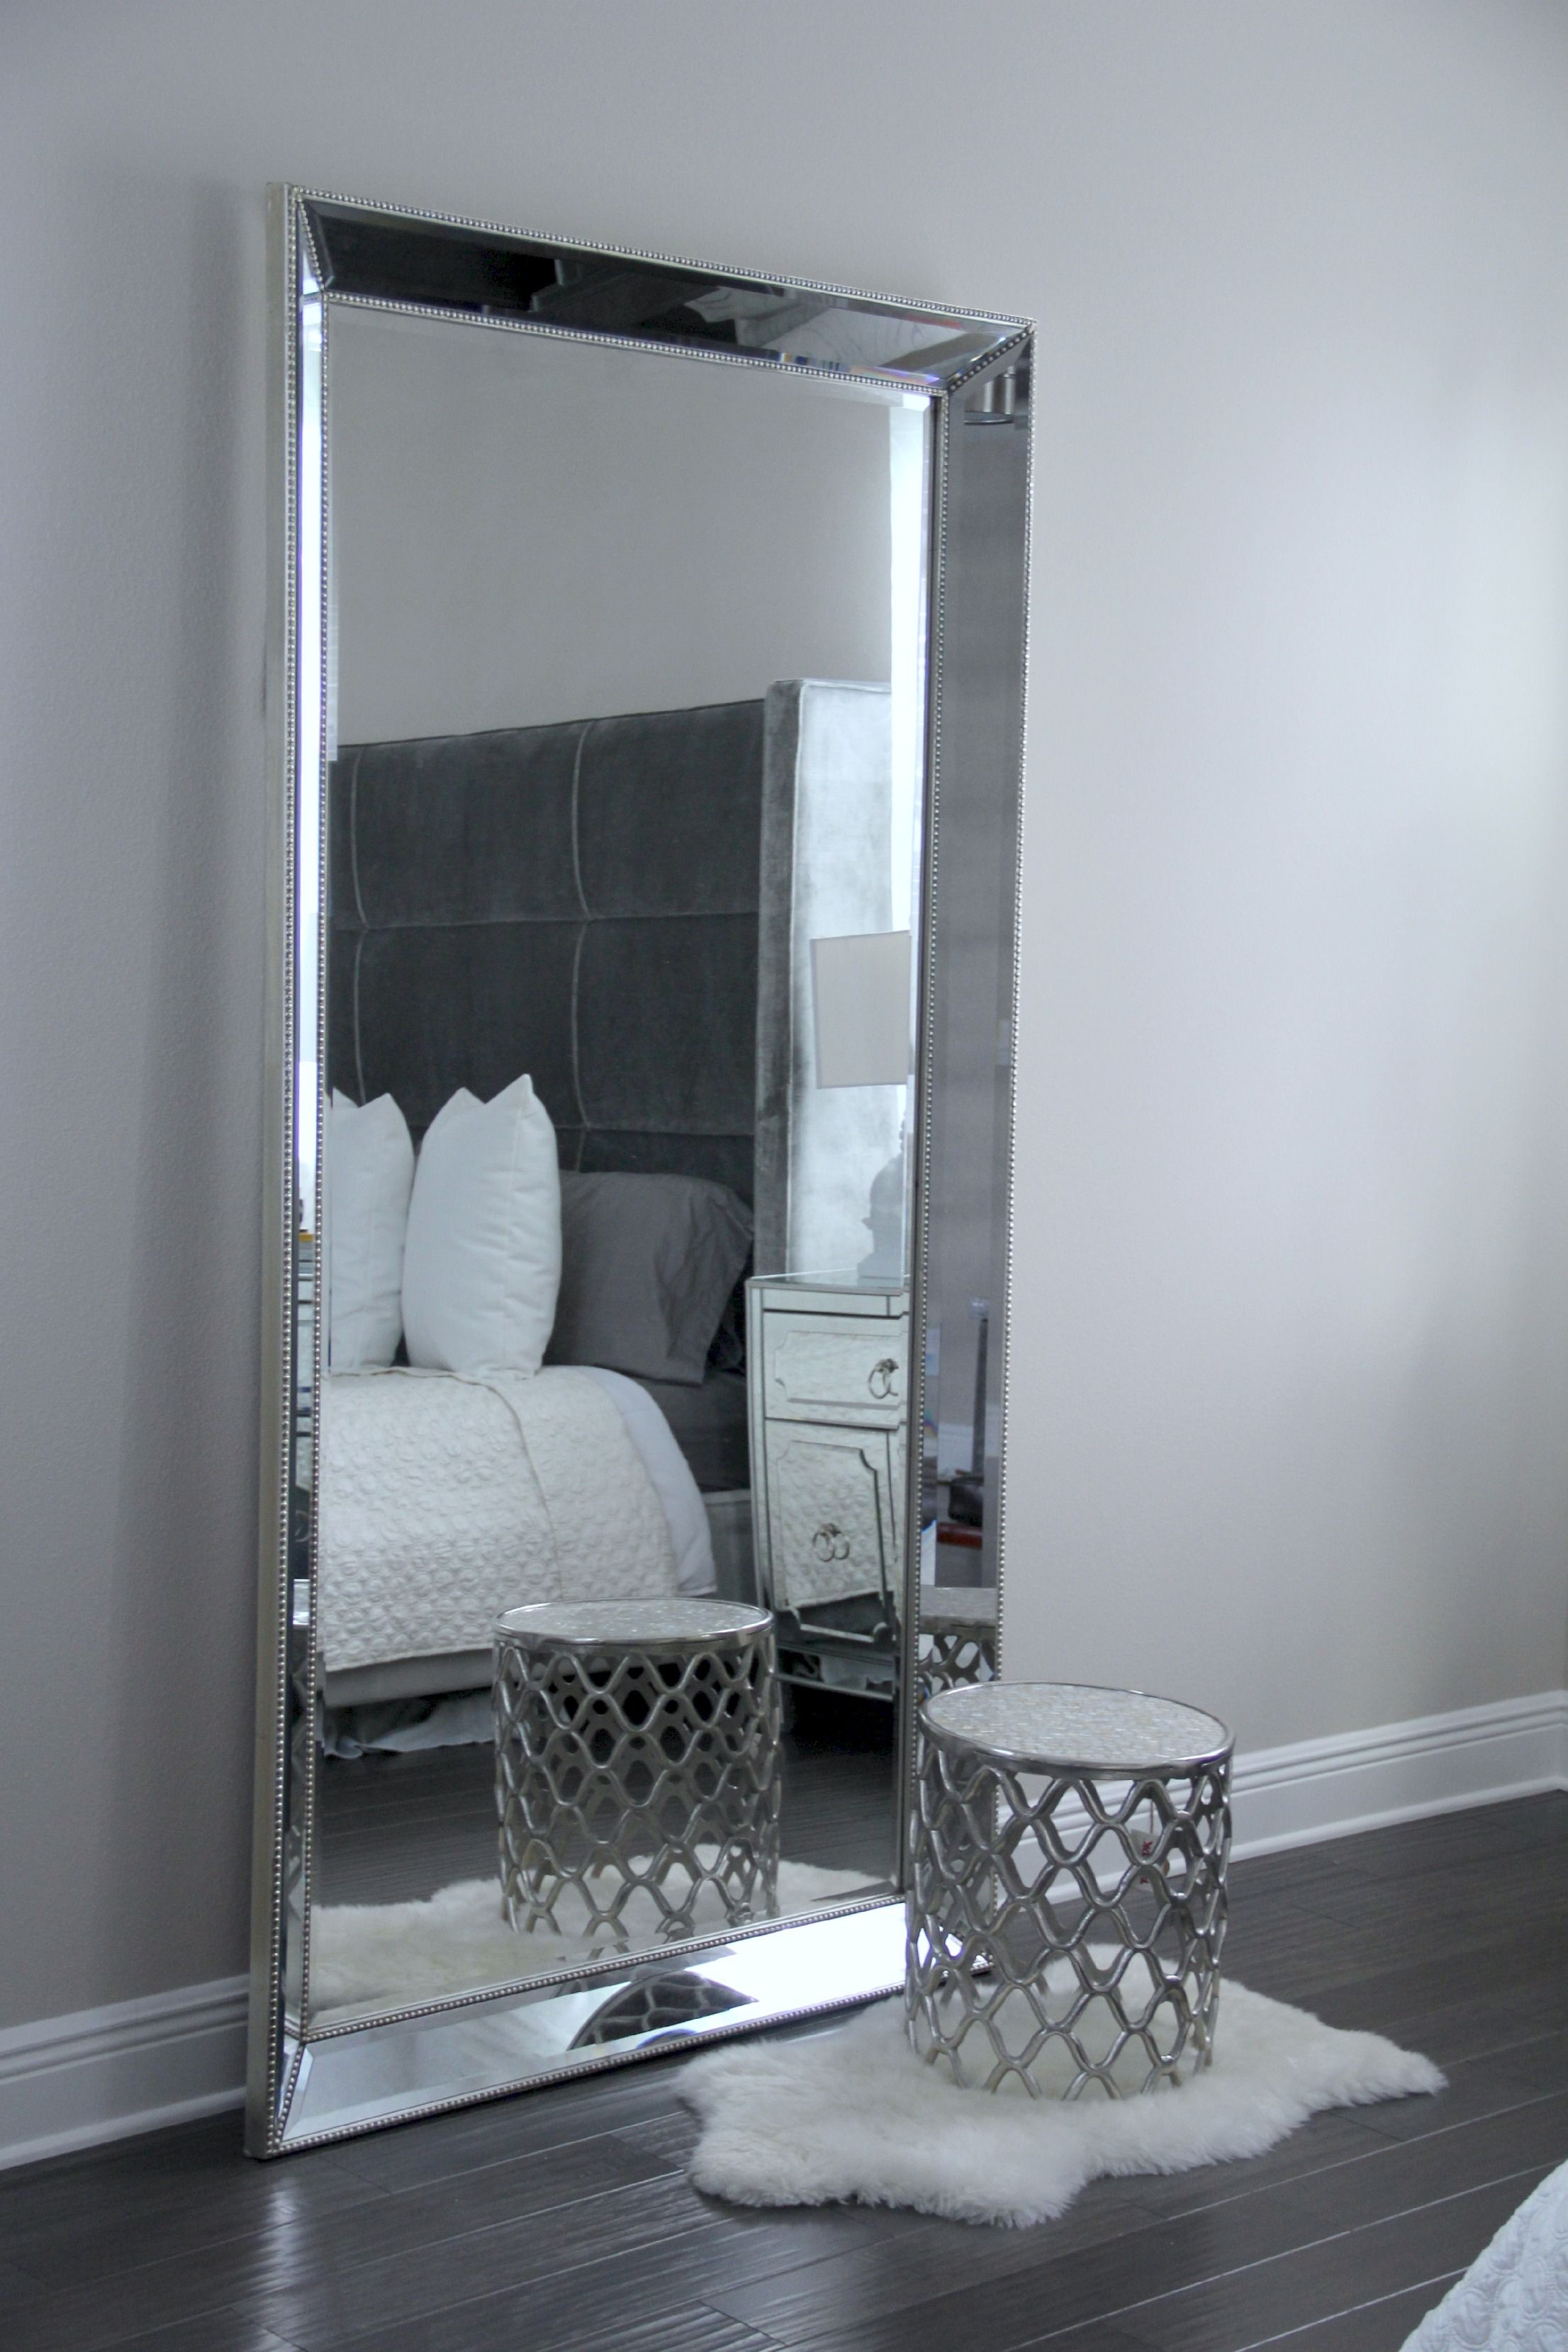 Antique Leaner Mirror For Your Room Decoration Ideas: Silver Intended For Leaning Mirrors (View 7 of 20)